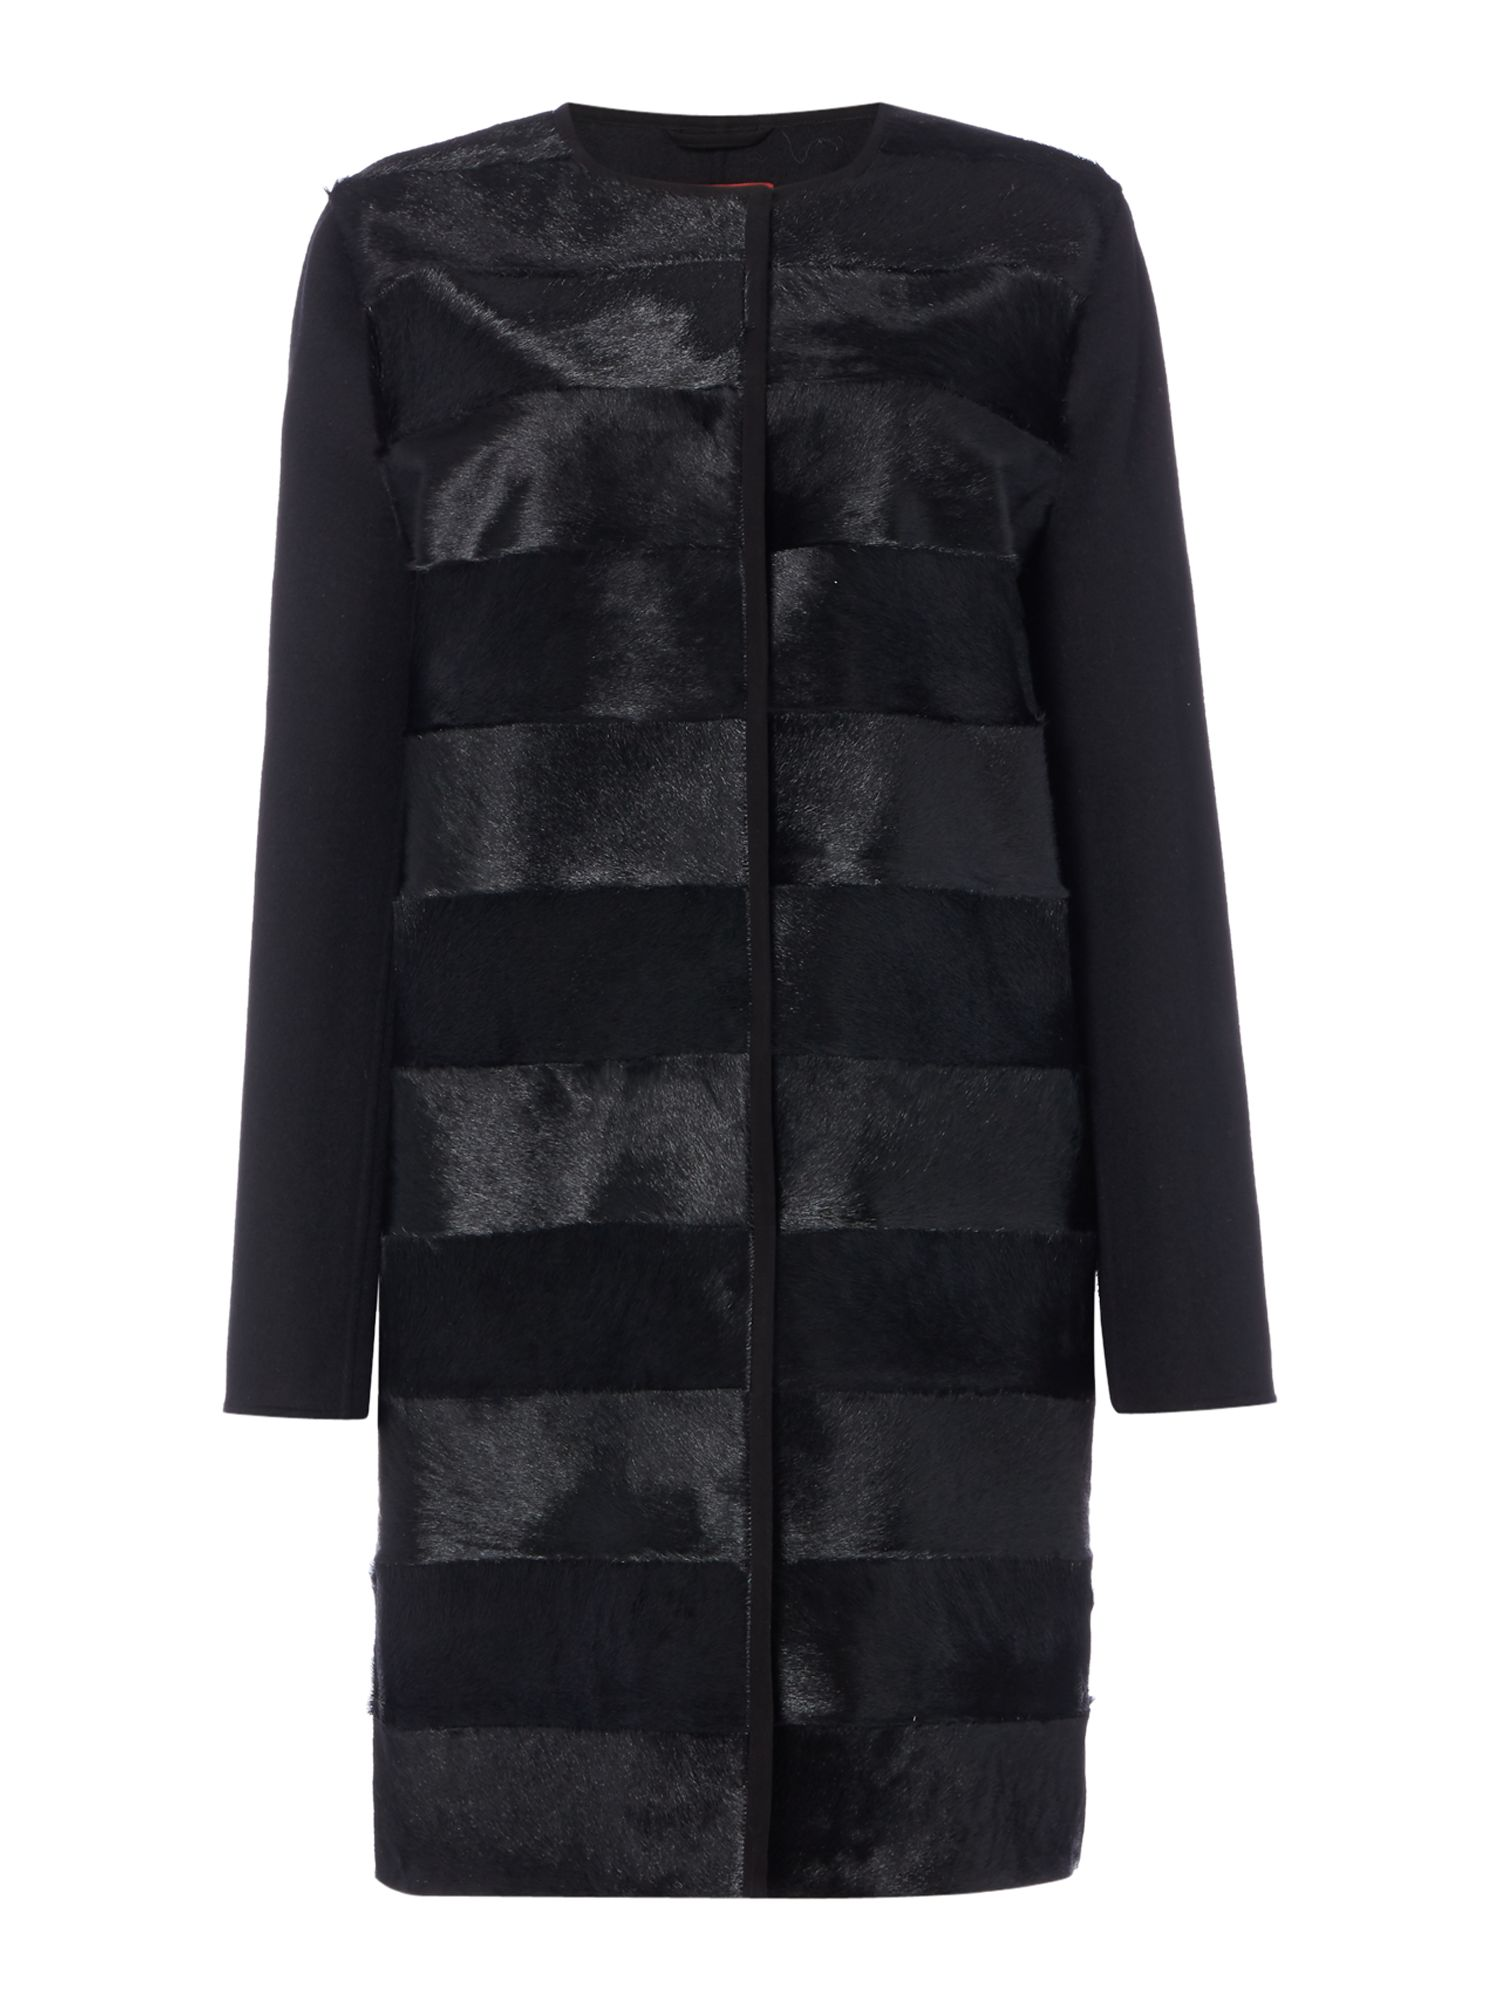 Max Mara Studio Romana pony skin collarless coat, Black